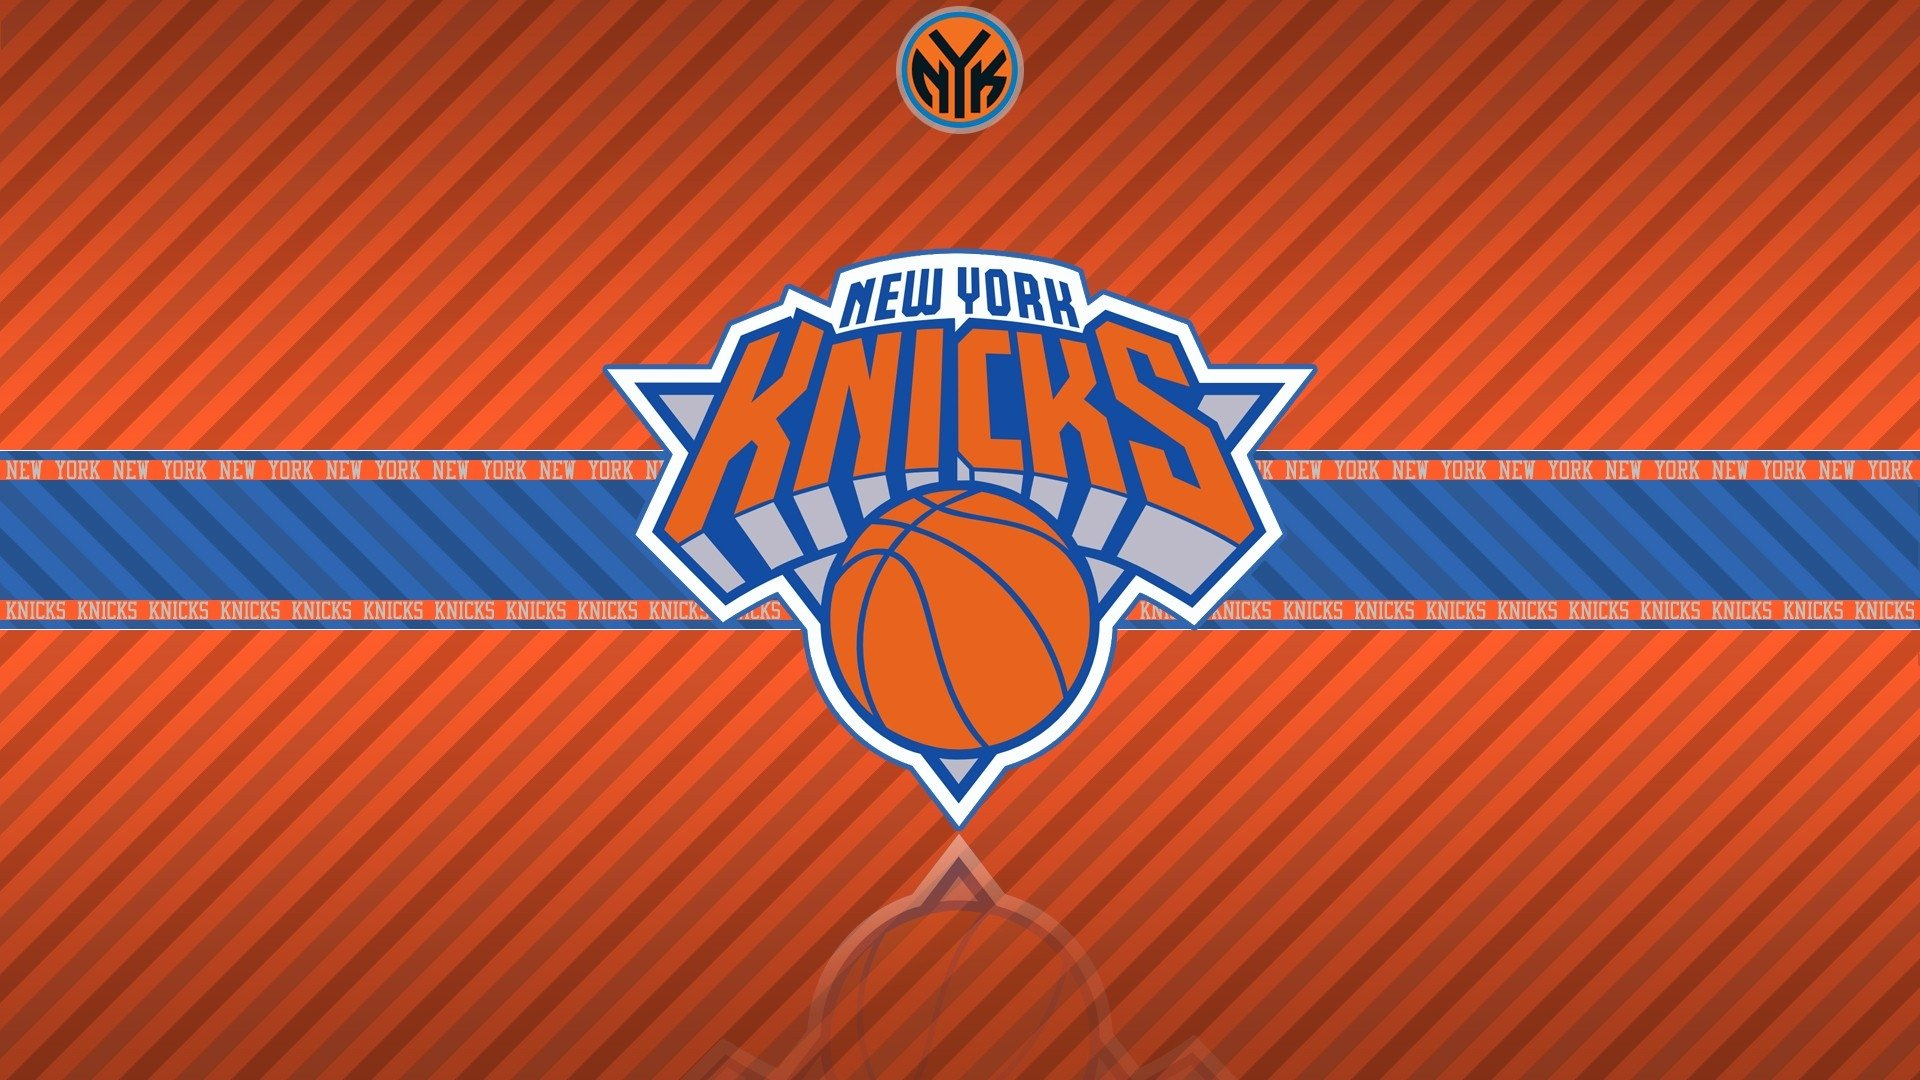 1920x1080 - New York Knicks Wallpapers 11